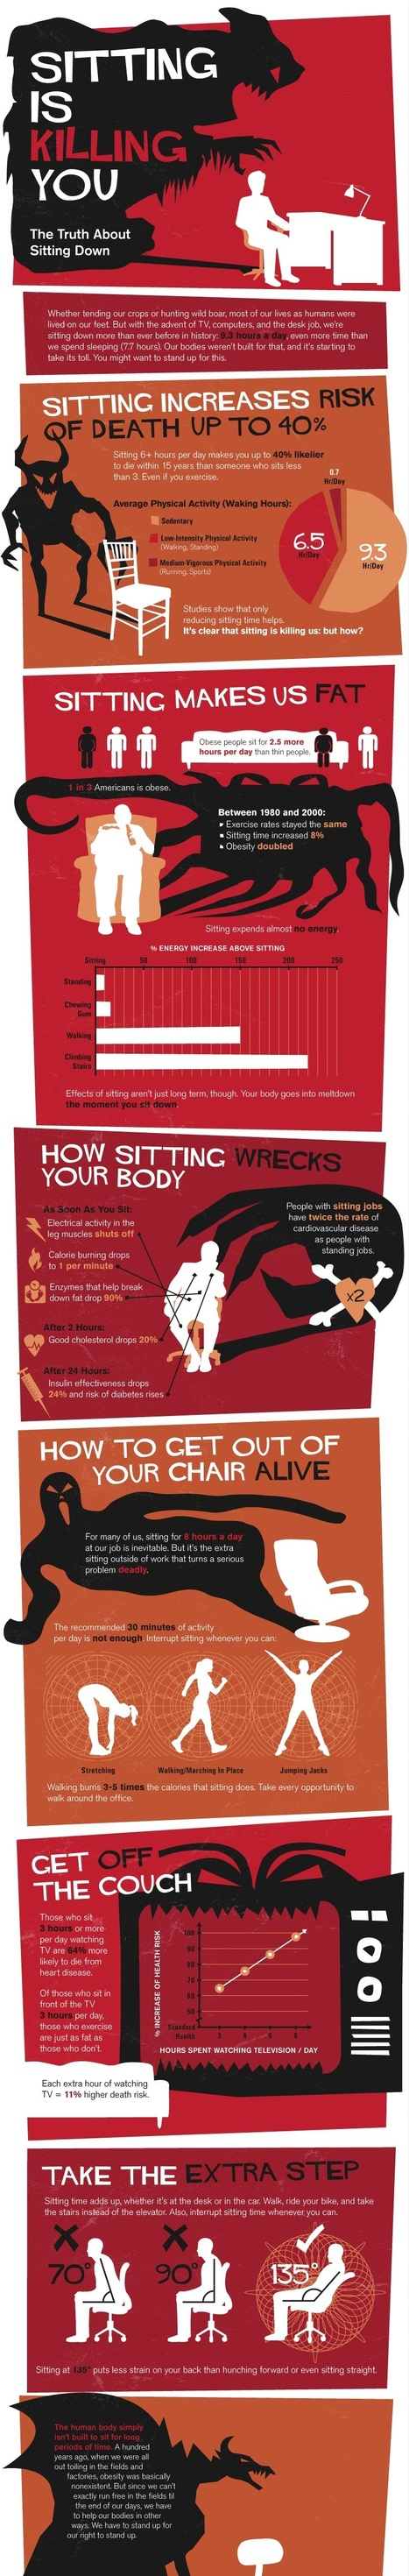 Sitting is Killing You - Angel | Mapmakers | Scoop.it